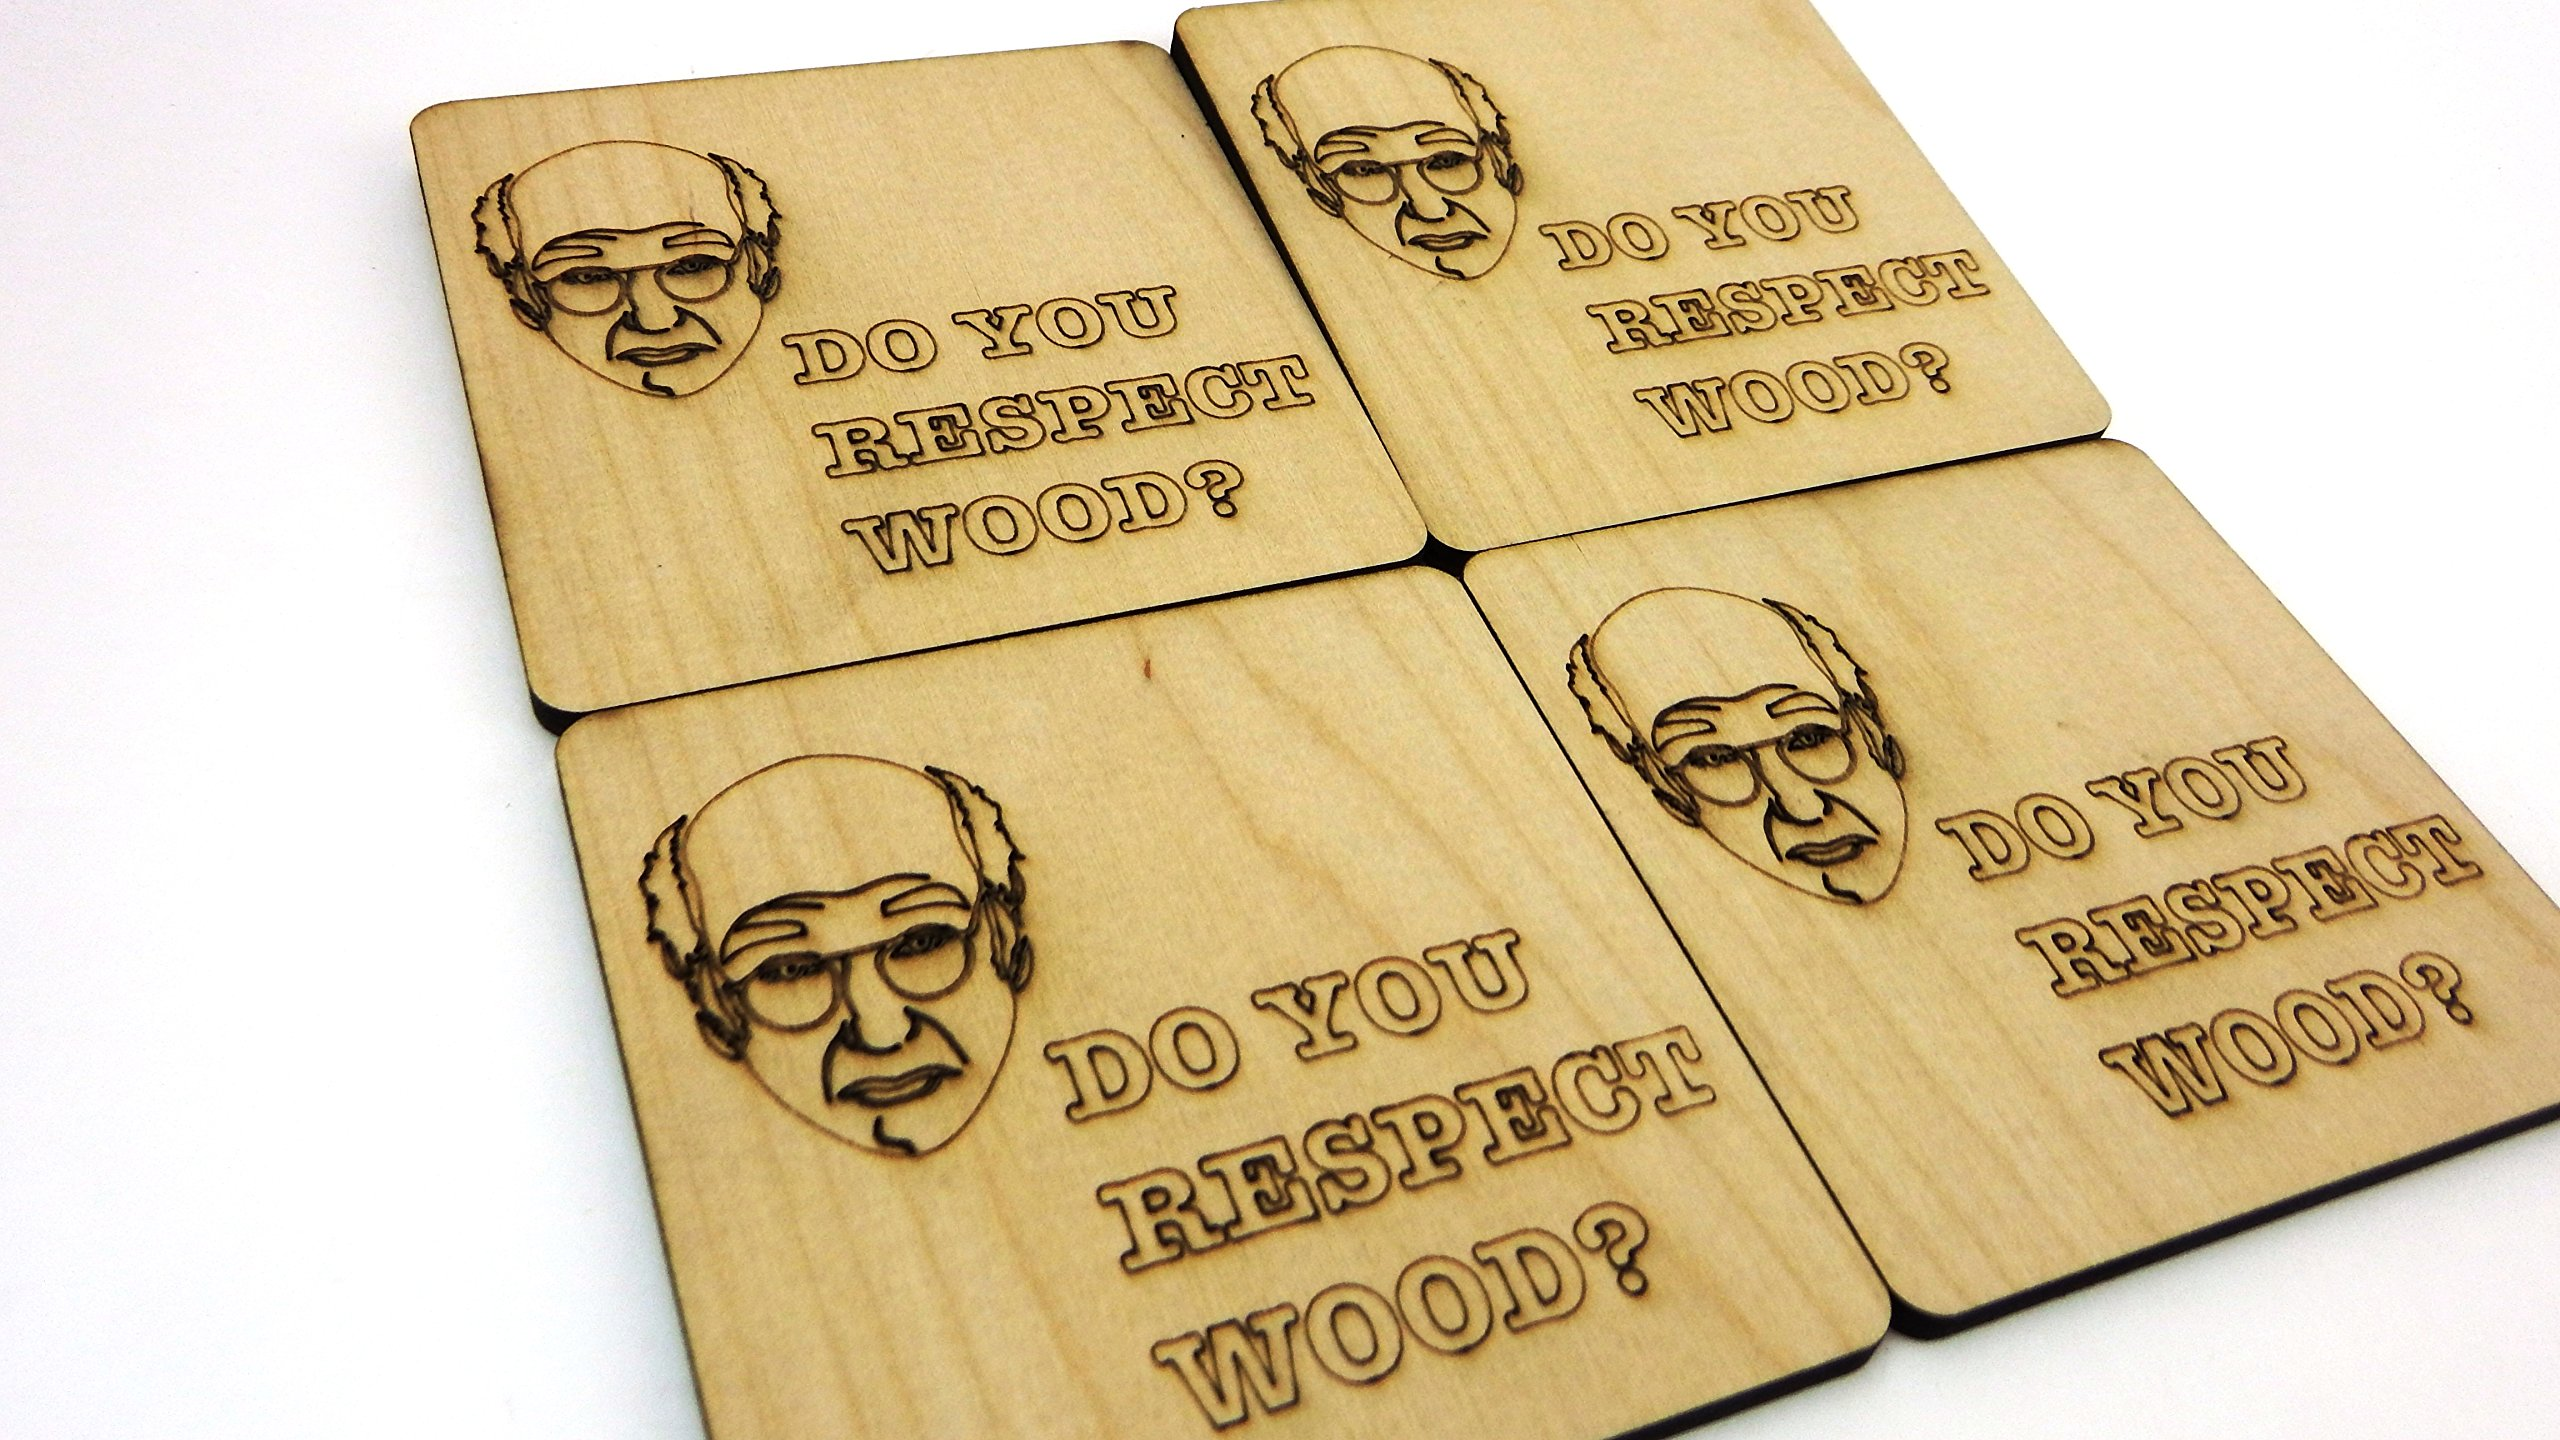 Set of 4 Wooden ''Do You Respect Wood?'' Larry David Coasters by Wooden Shoe Designs (Image #2)